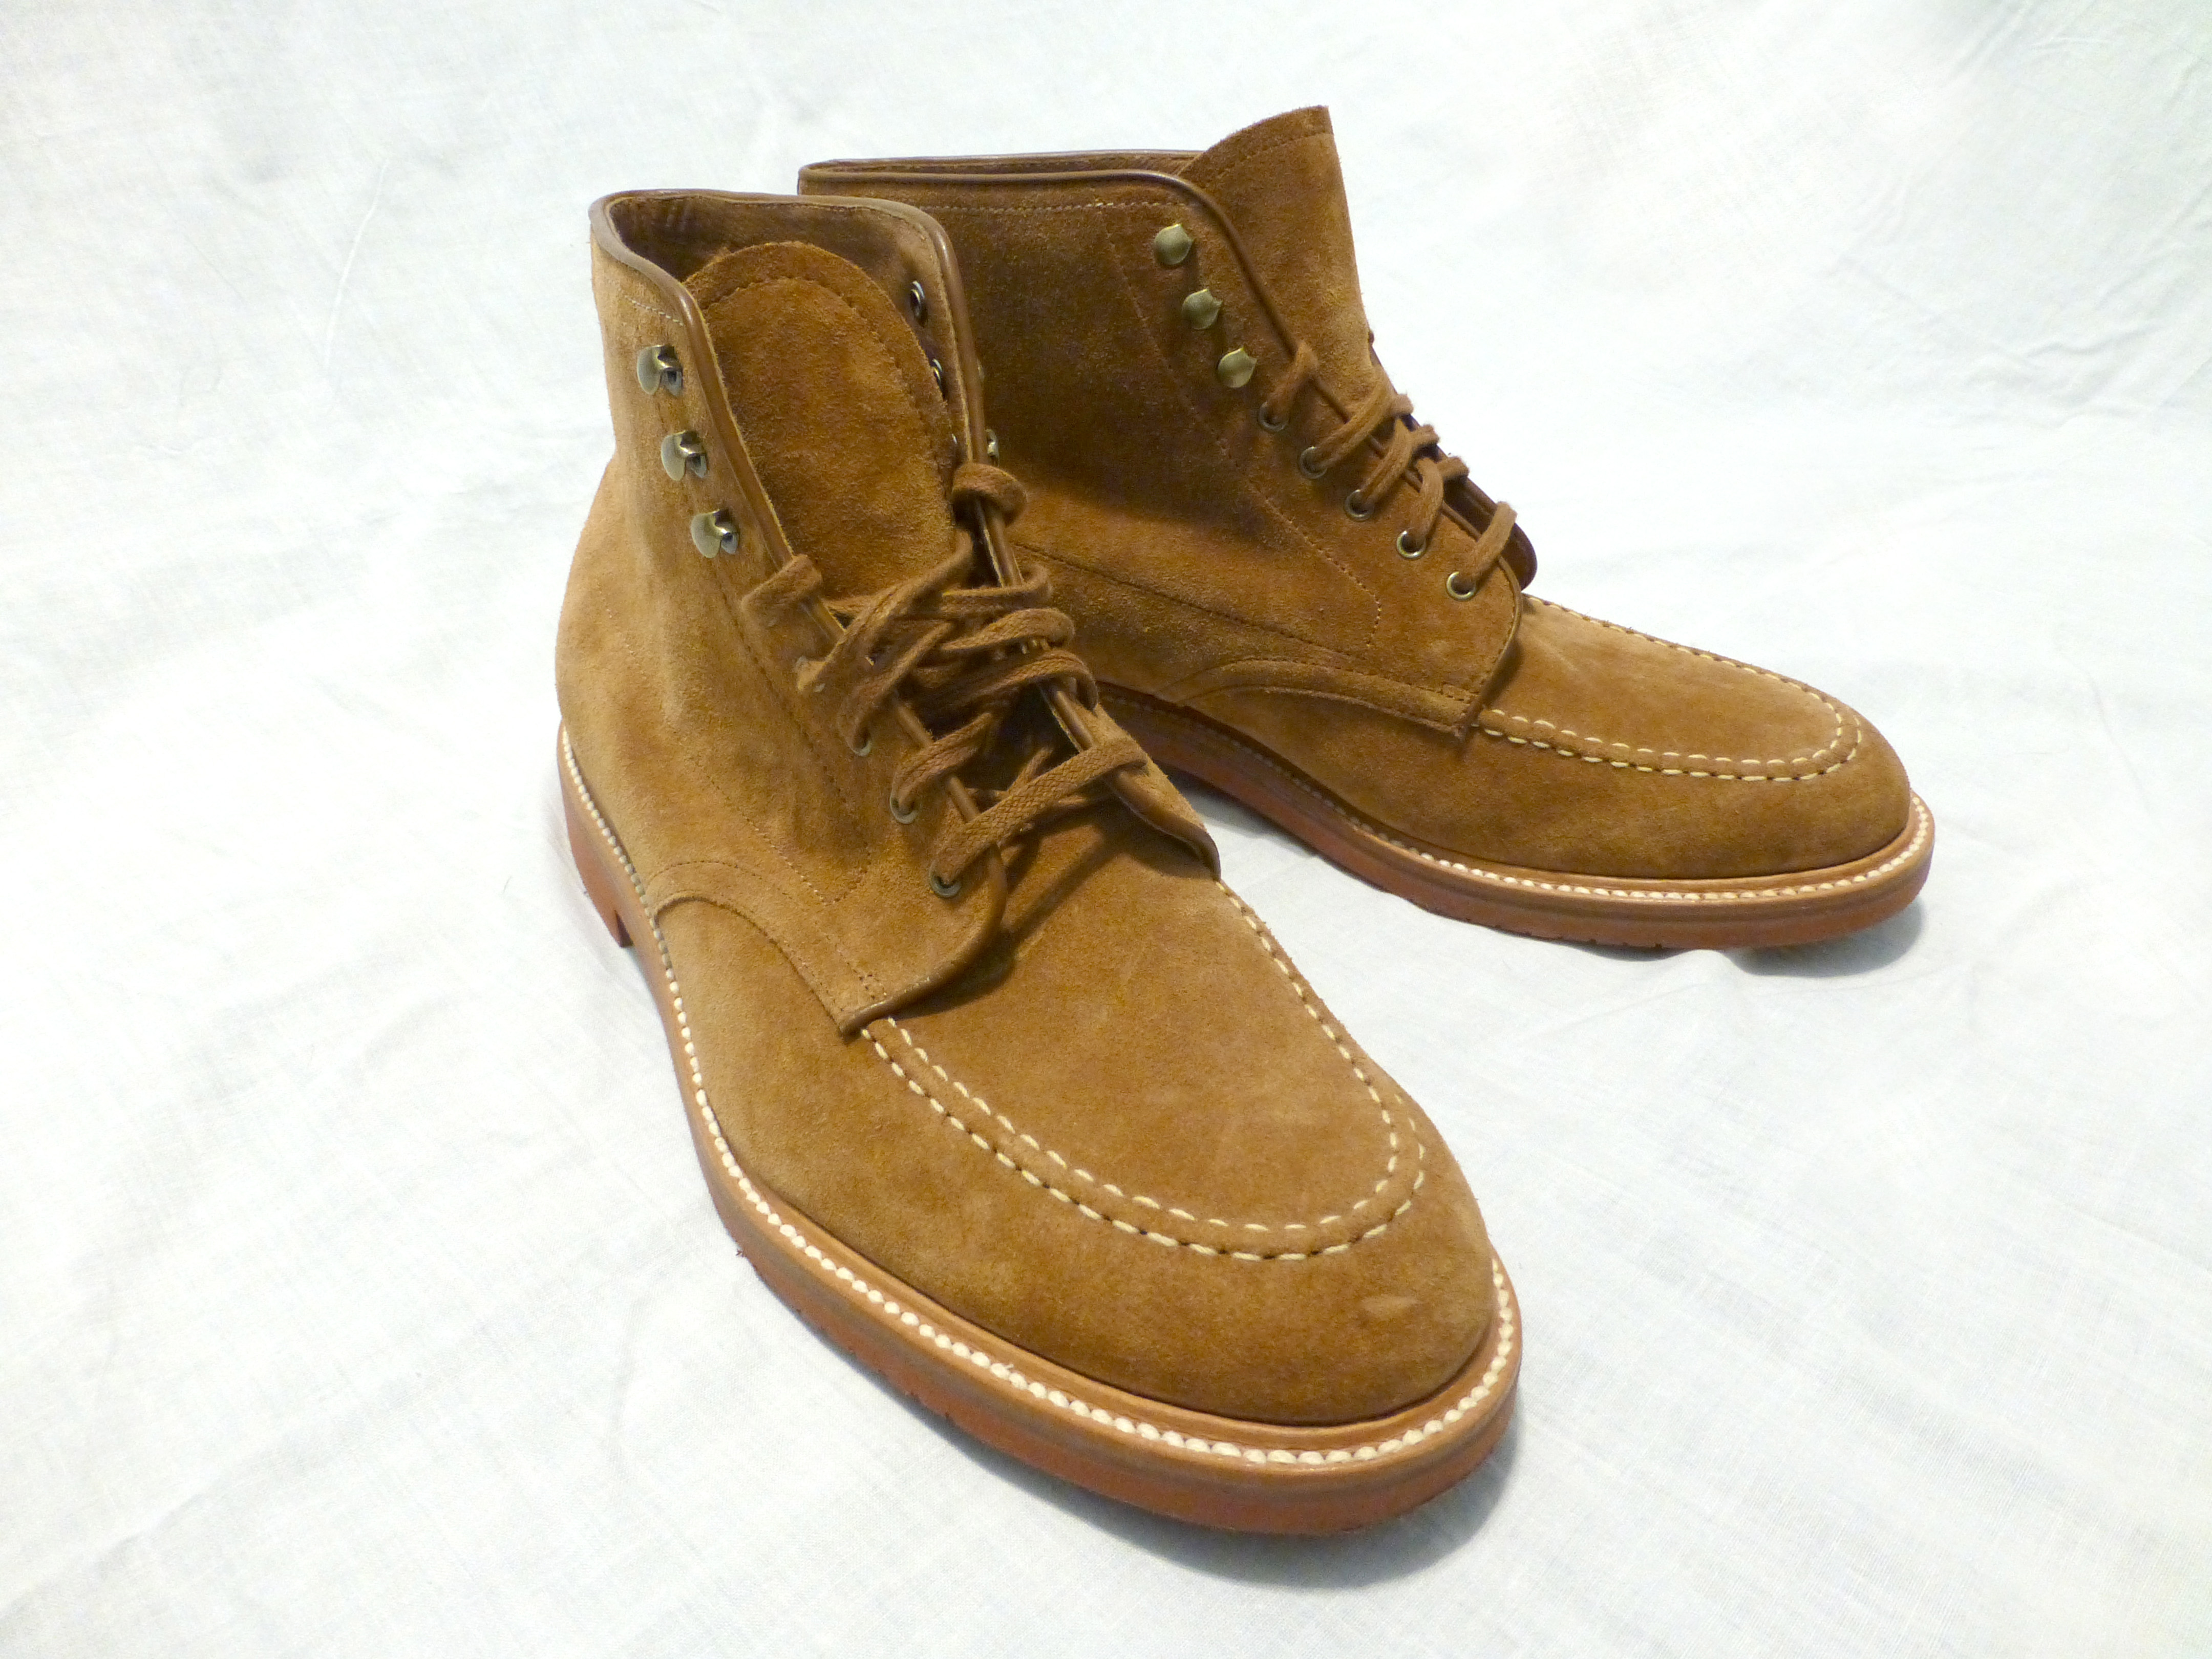 7e0e5c80589 J Crew Kenton Suede Boots Sahara - The Best Boots In The World